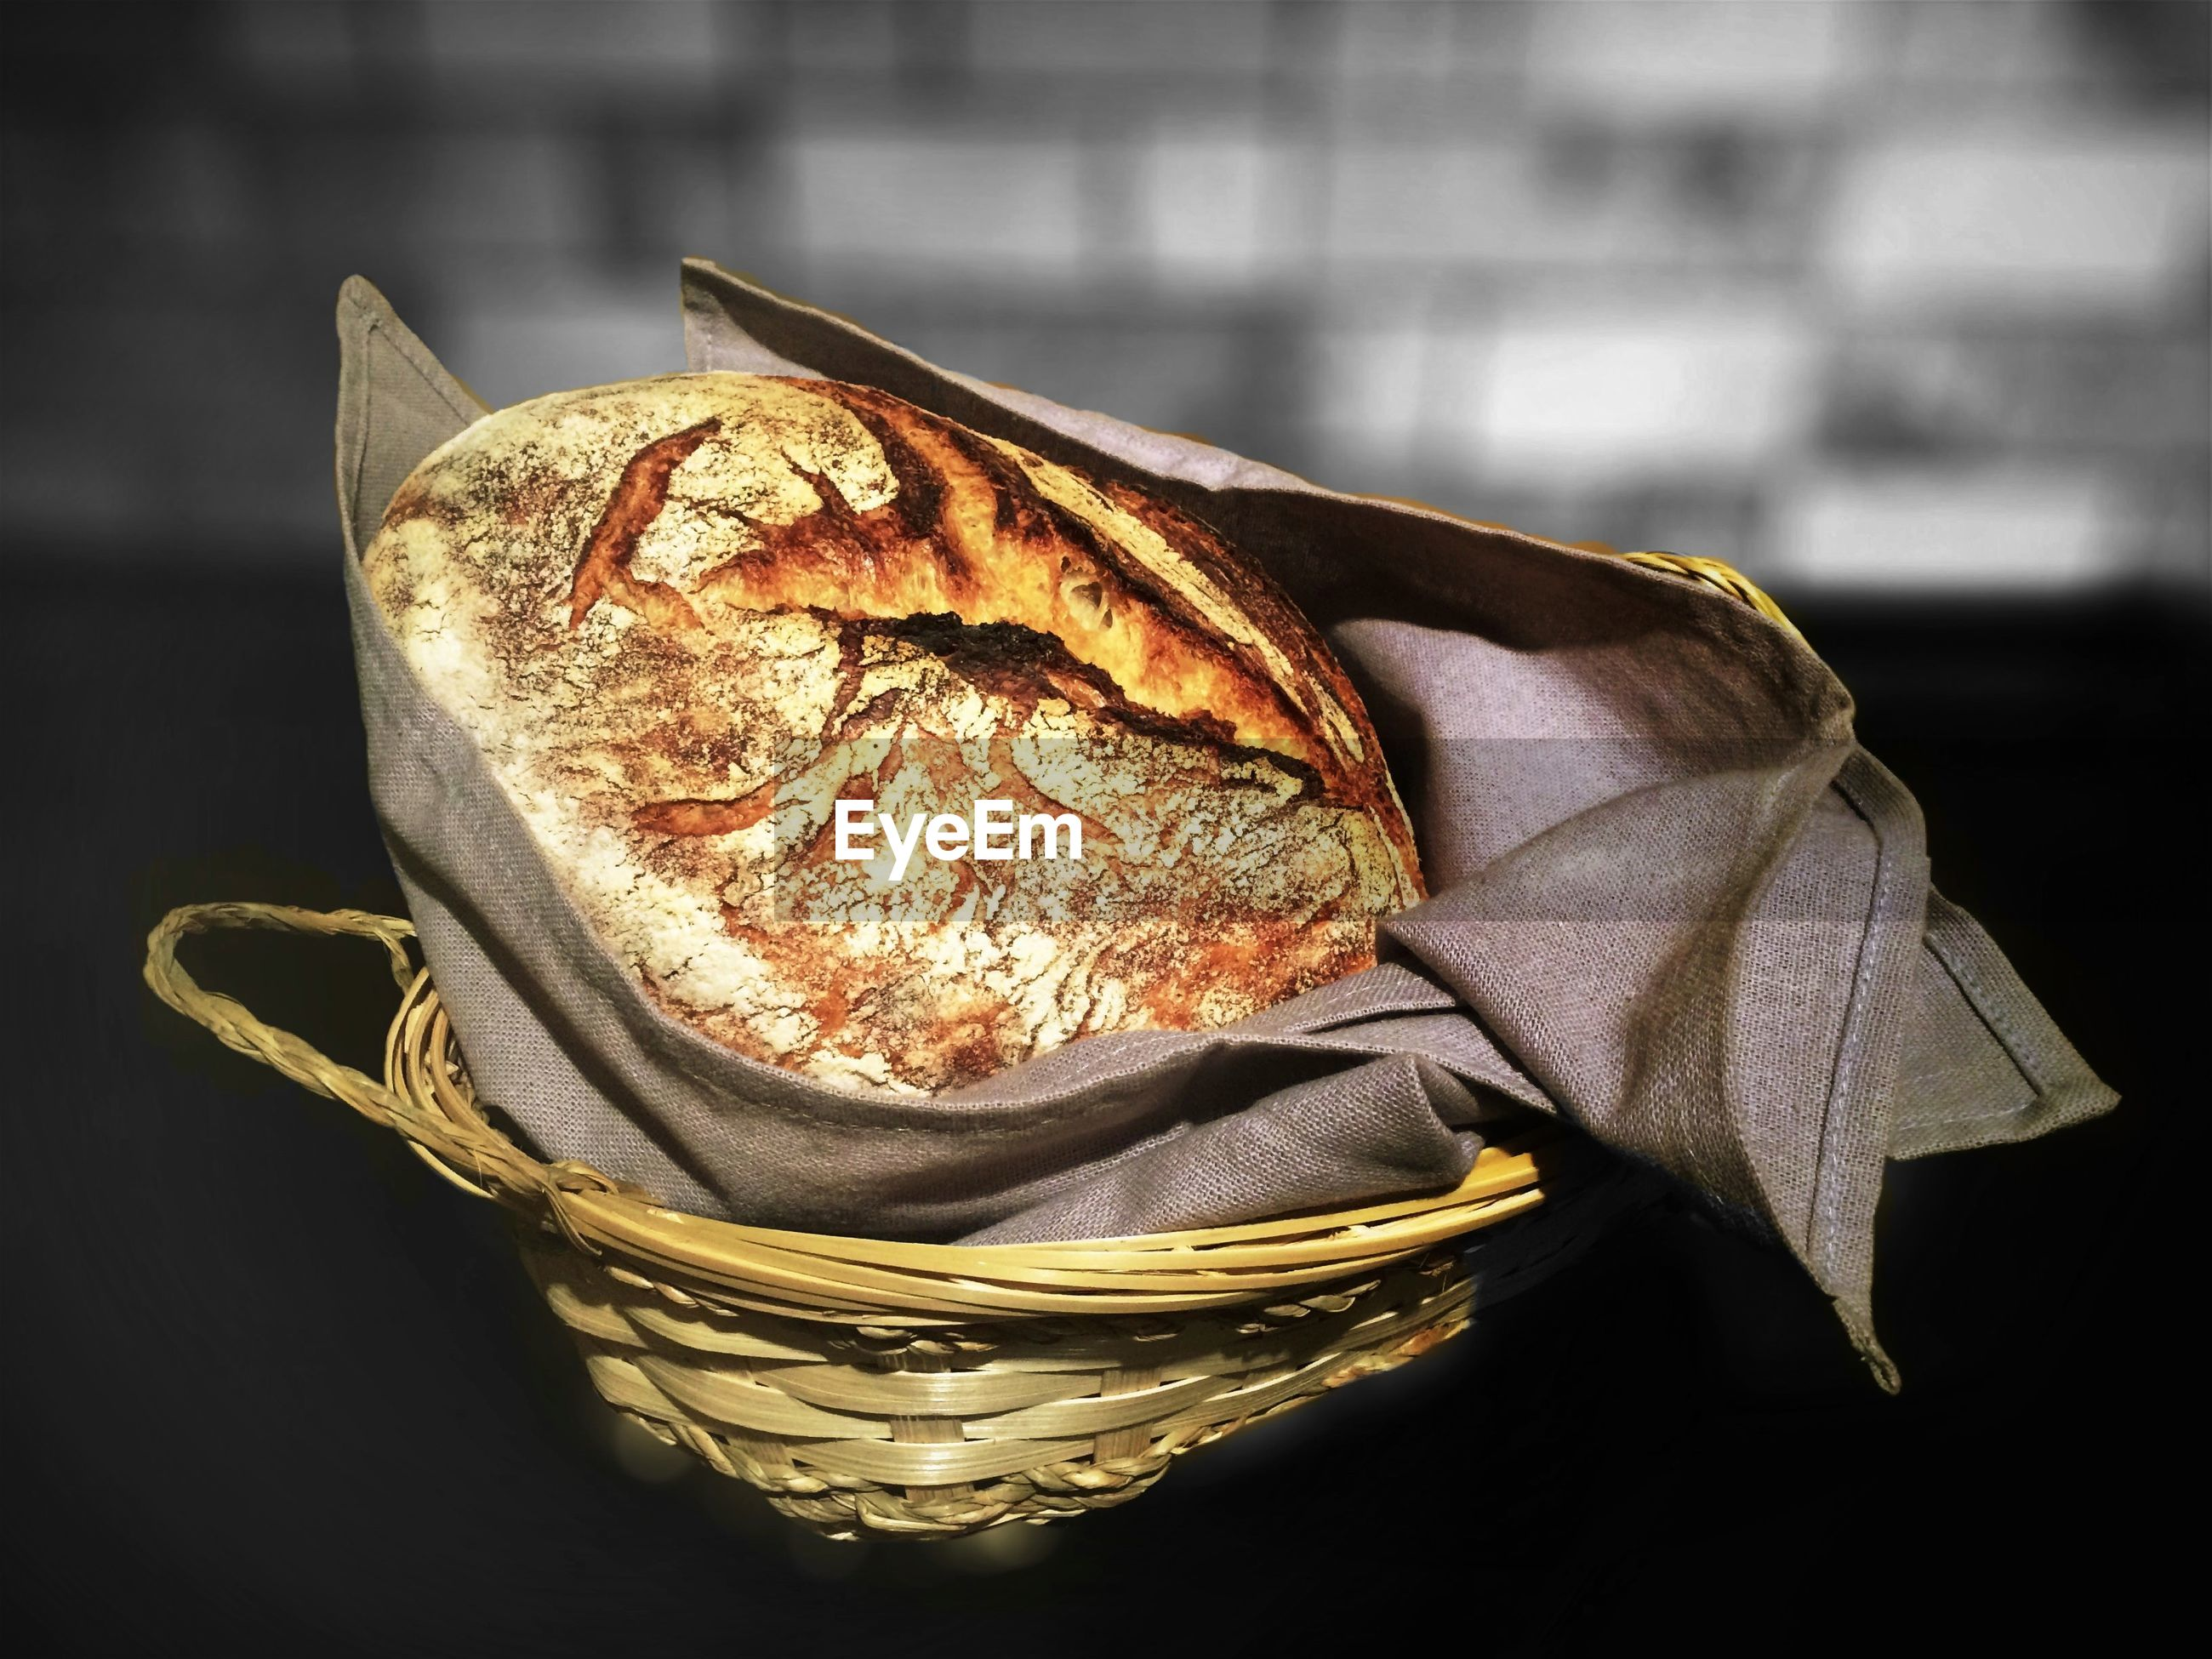 High angle view of bread and napkin in wicker basket